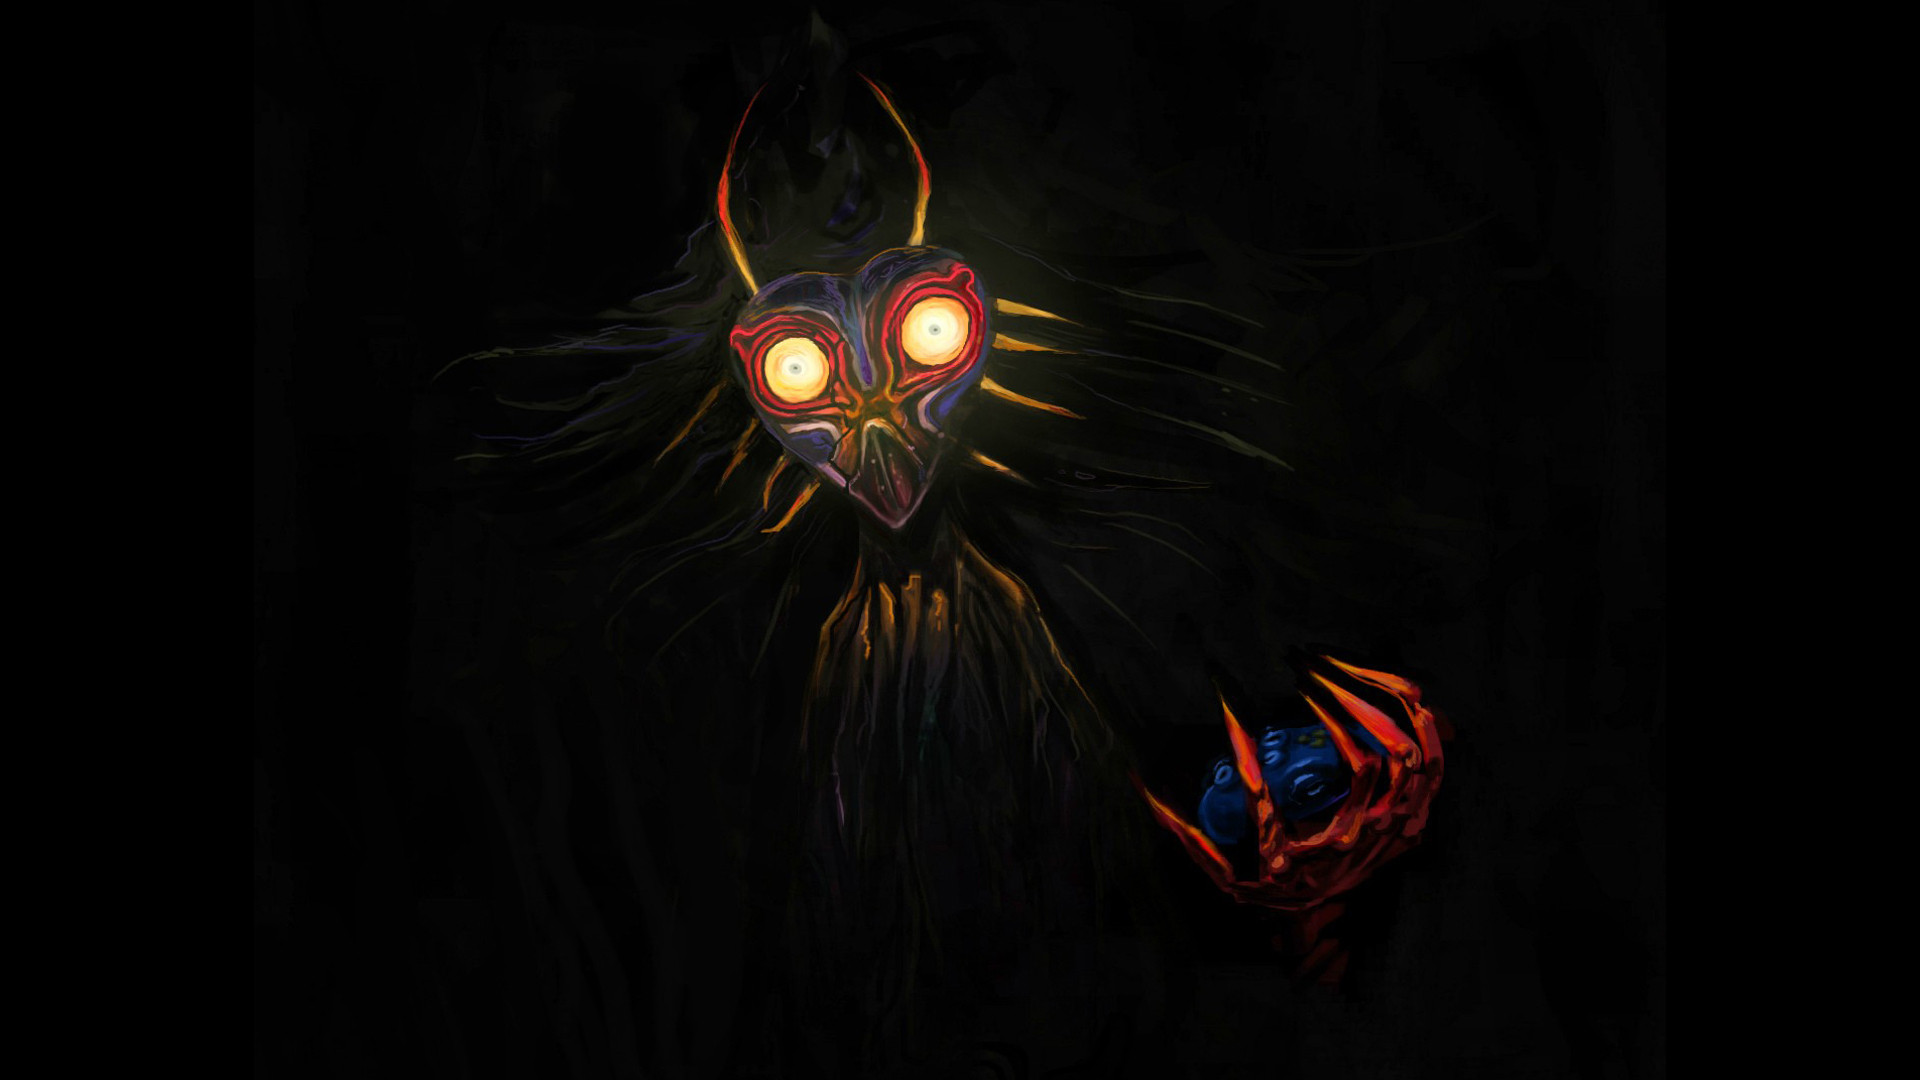 Majora S Mask Desktop Background: The Legend Of Zelda: Majora's Mask HD Wallpaper